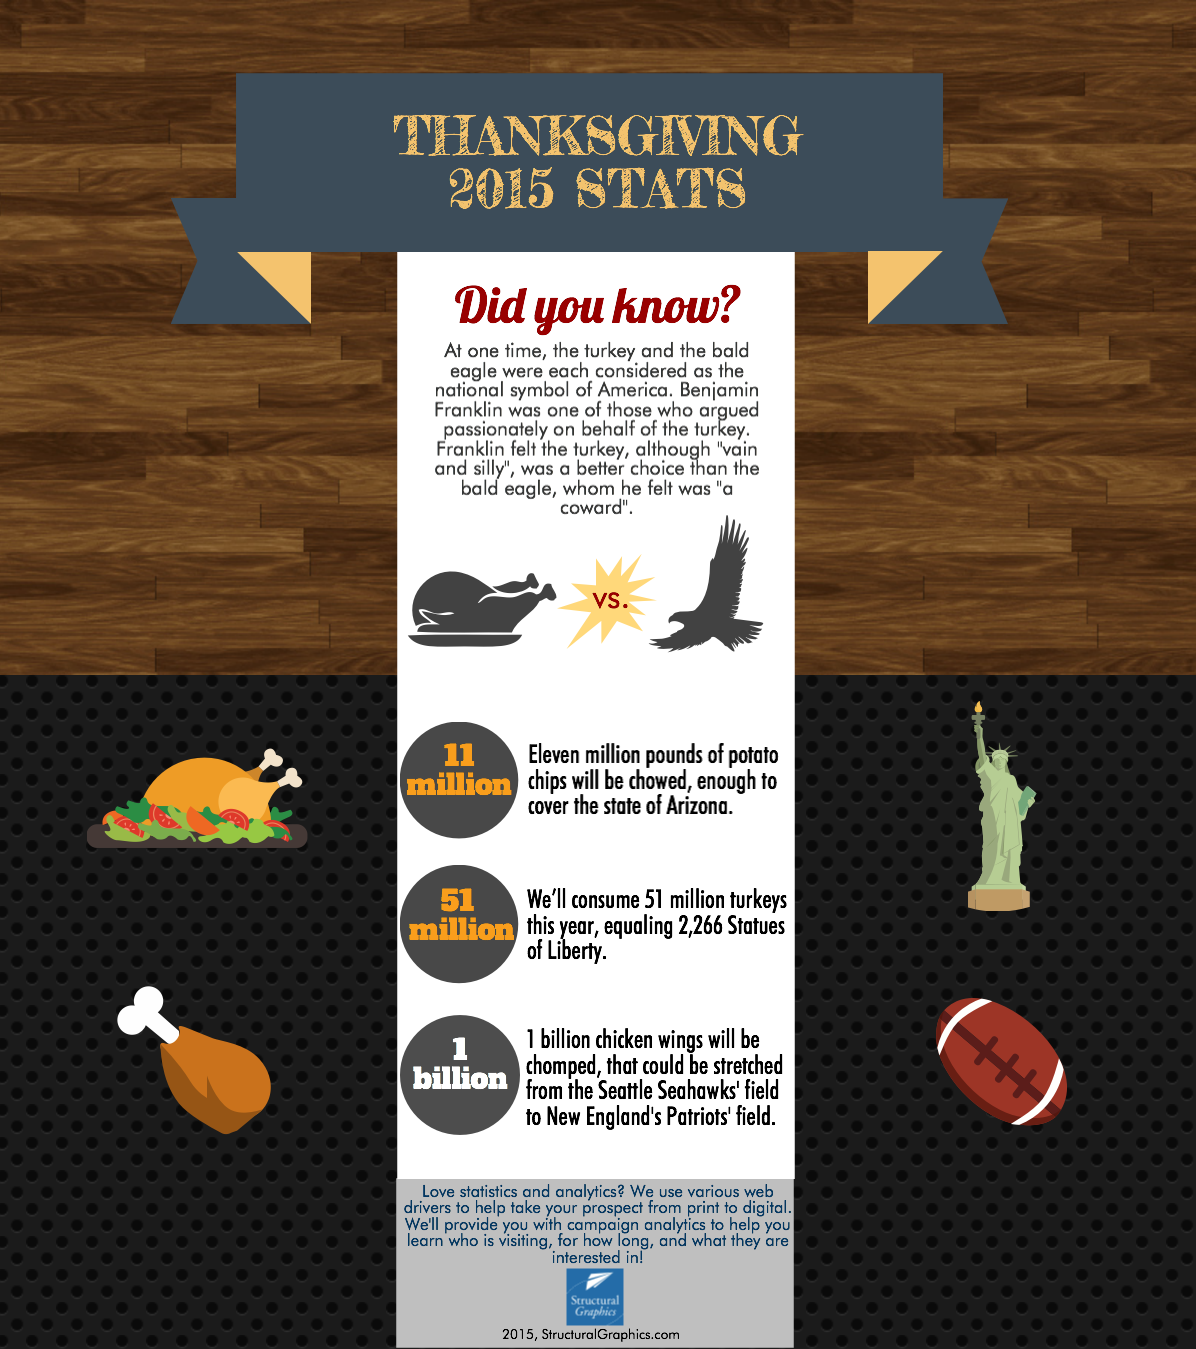 Thanksgiving Stats SG